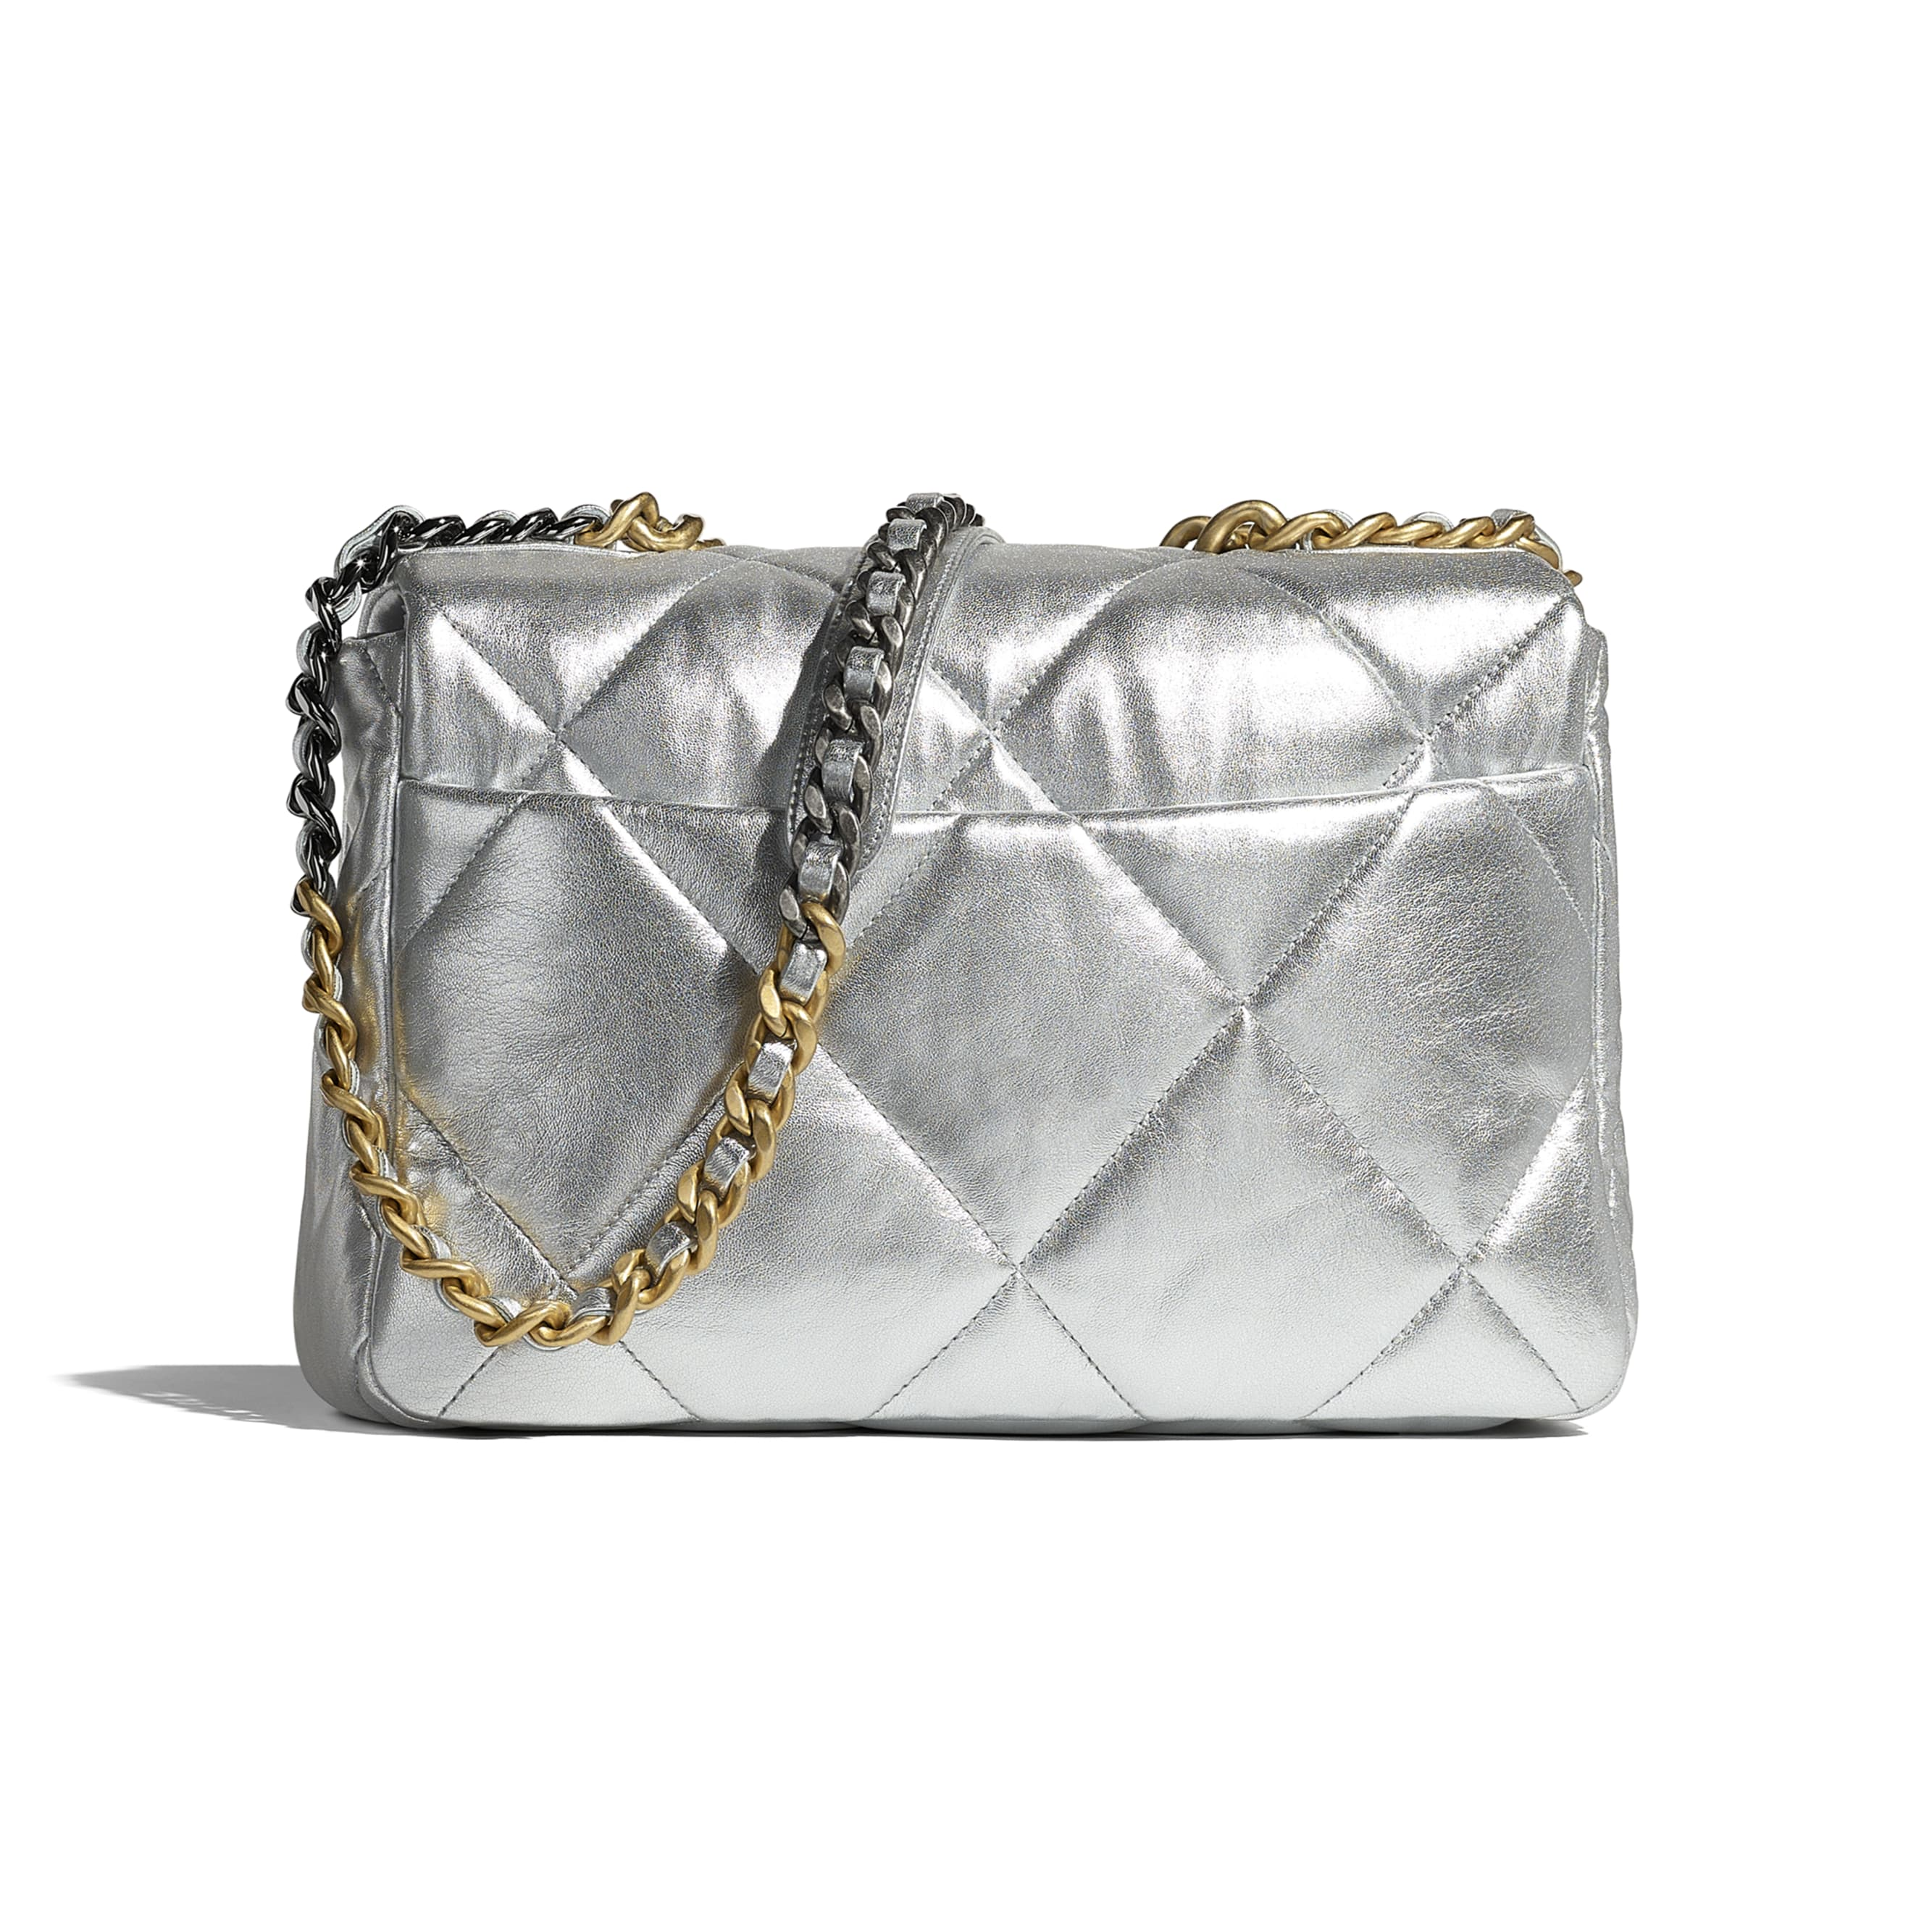 CHANEL 19 Large Handbag - Silver - Metallic Lambskin, Gold-Tone, Silver-Tone & Ruthenium-Finish Metal - CHANEL - Alternative view - see standard sized version